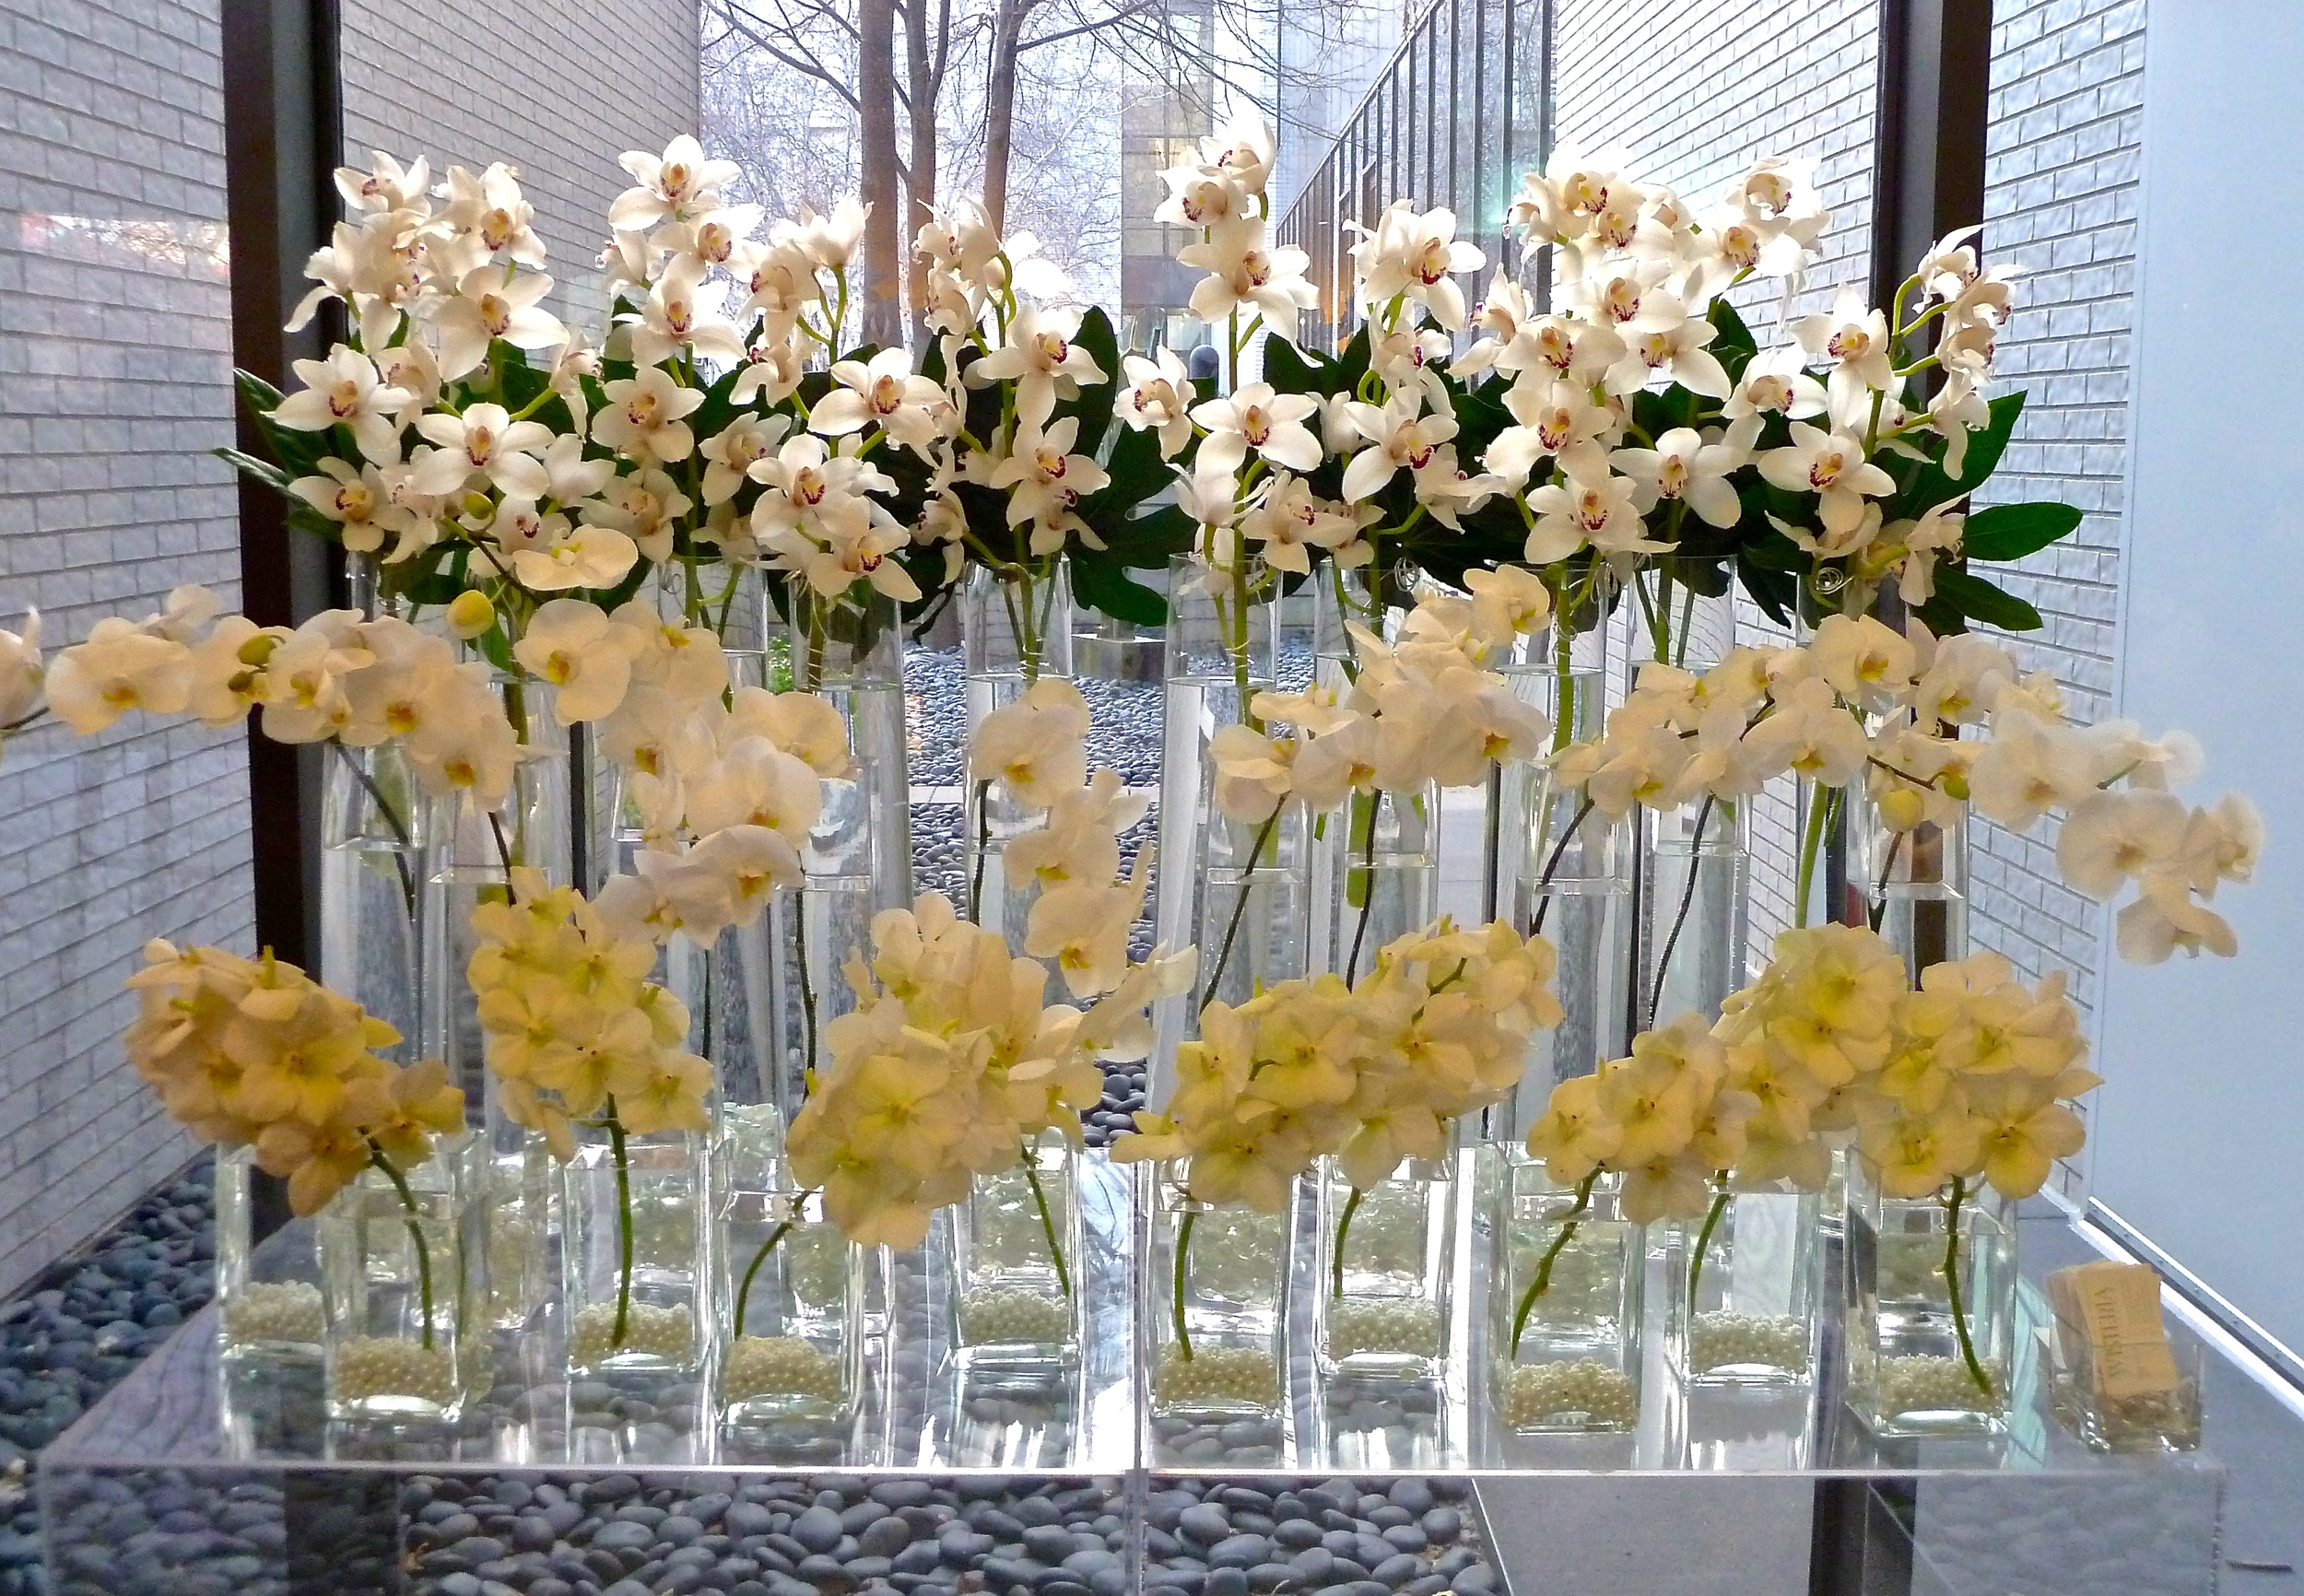 Wisteria Design Studio  in Minneapolis, MN provides an extravagant example of multiples in design beautifully co-existing. Please DO try this at home with your on shapes, sizes and flowers!